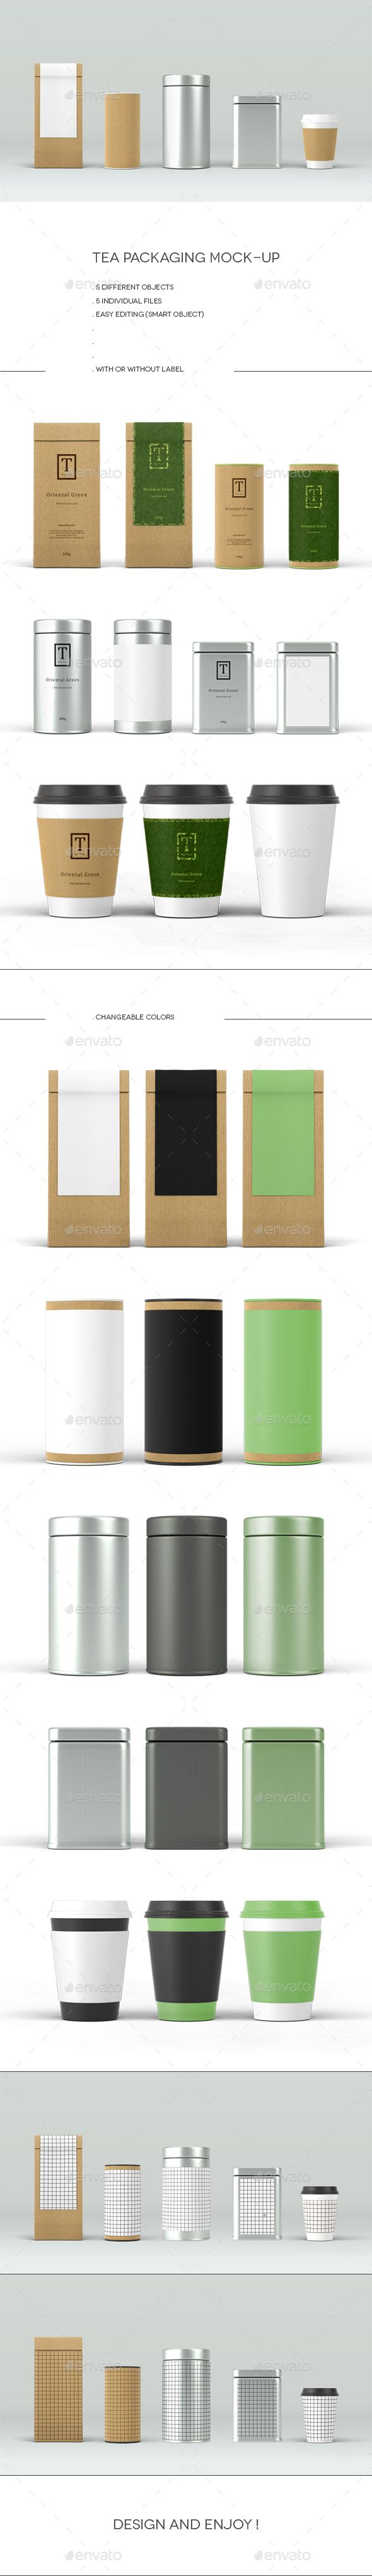 Tea Packaging Mock-Up #design Download: http://graphicriver.net/item/tea-packaging-mockup/14187464?ref=ksioks